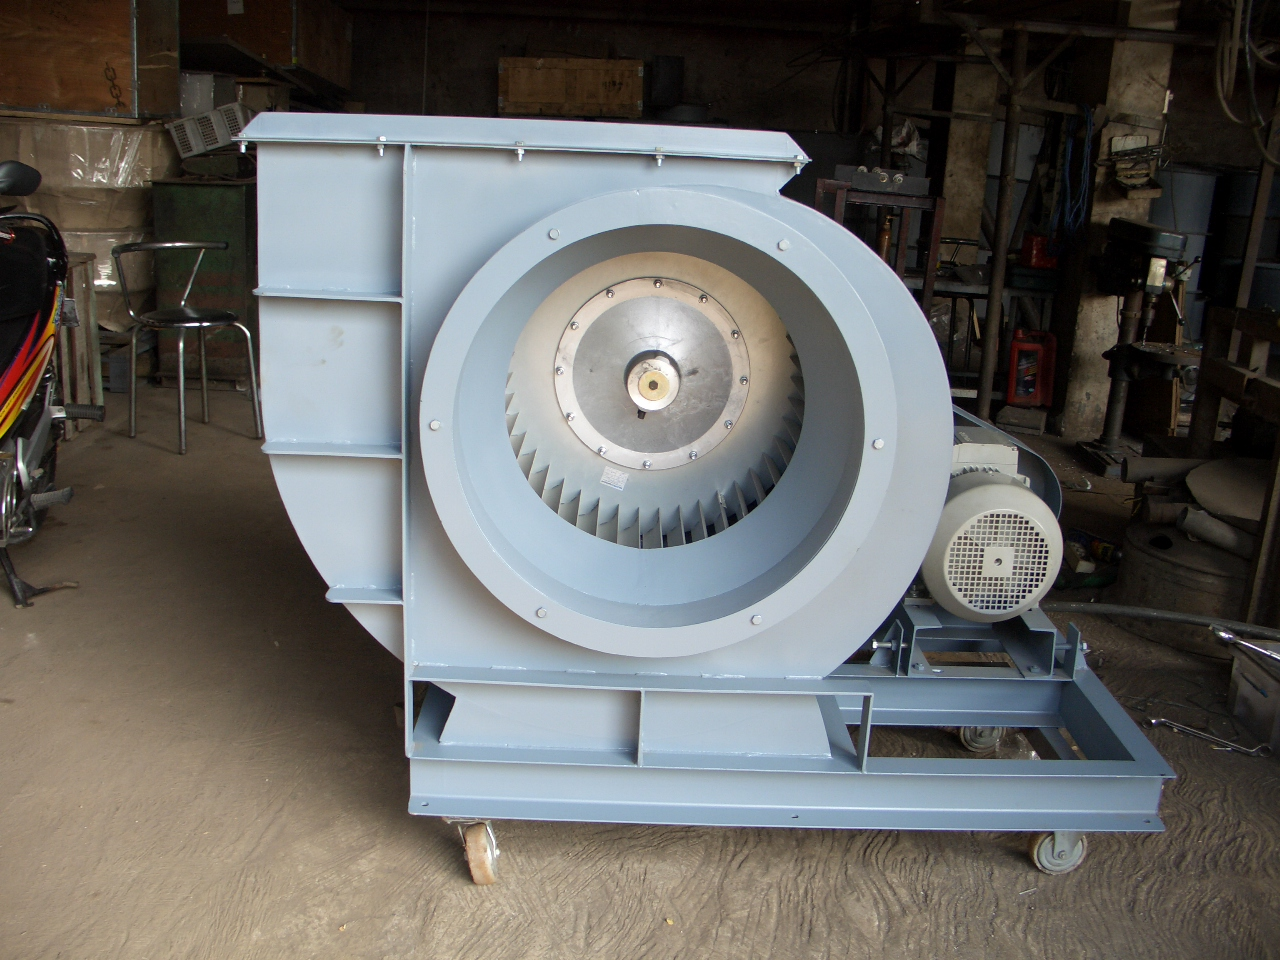 Hi nice images about centrifugal fans . Got good information about it  #4E697D